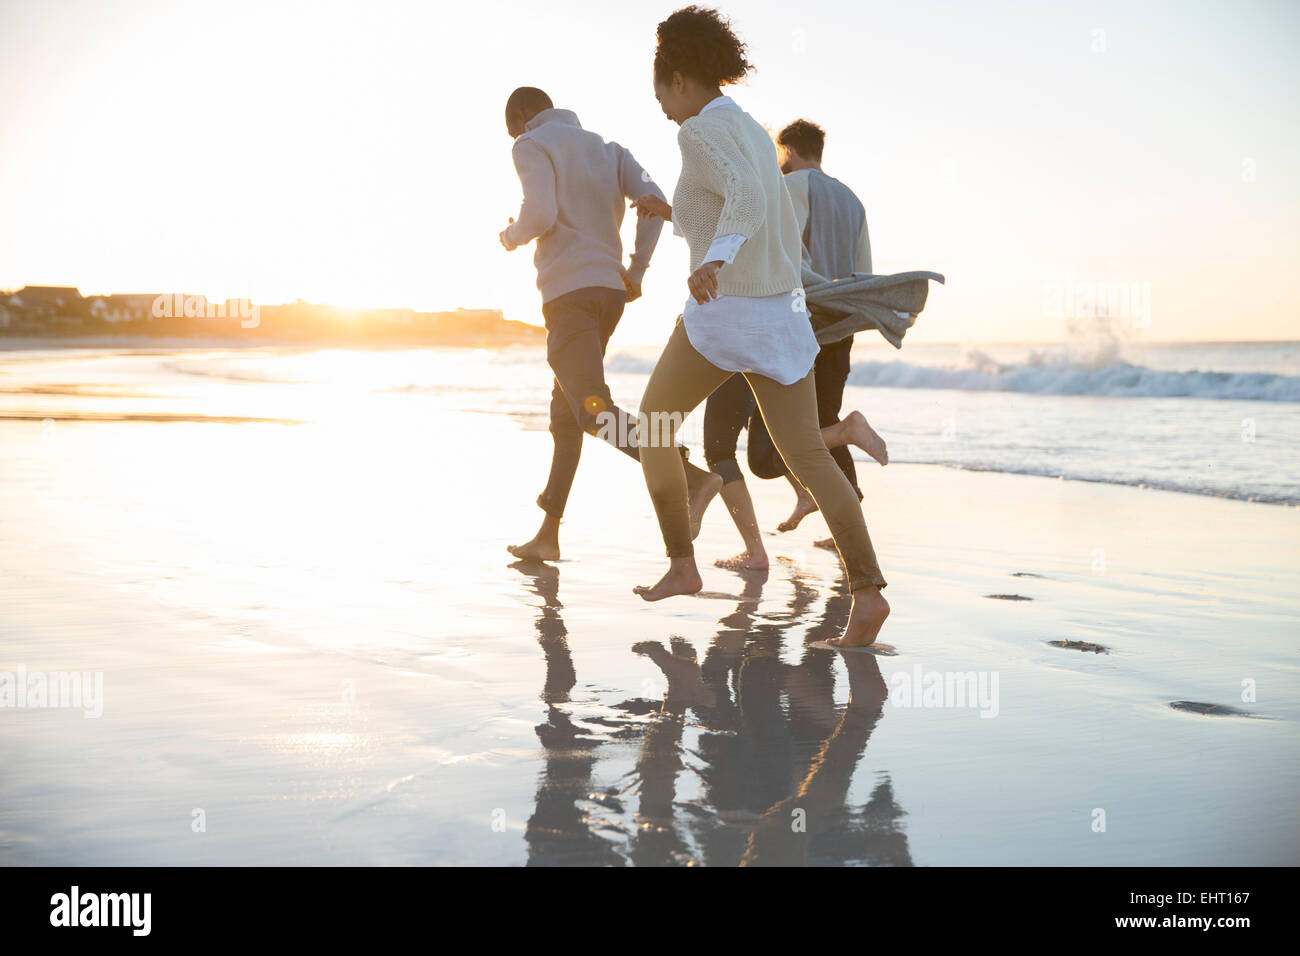 Four friends running ob beach in evening sun - Stock Image